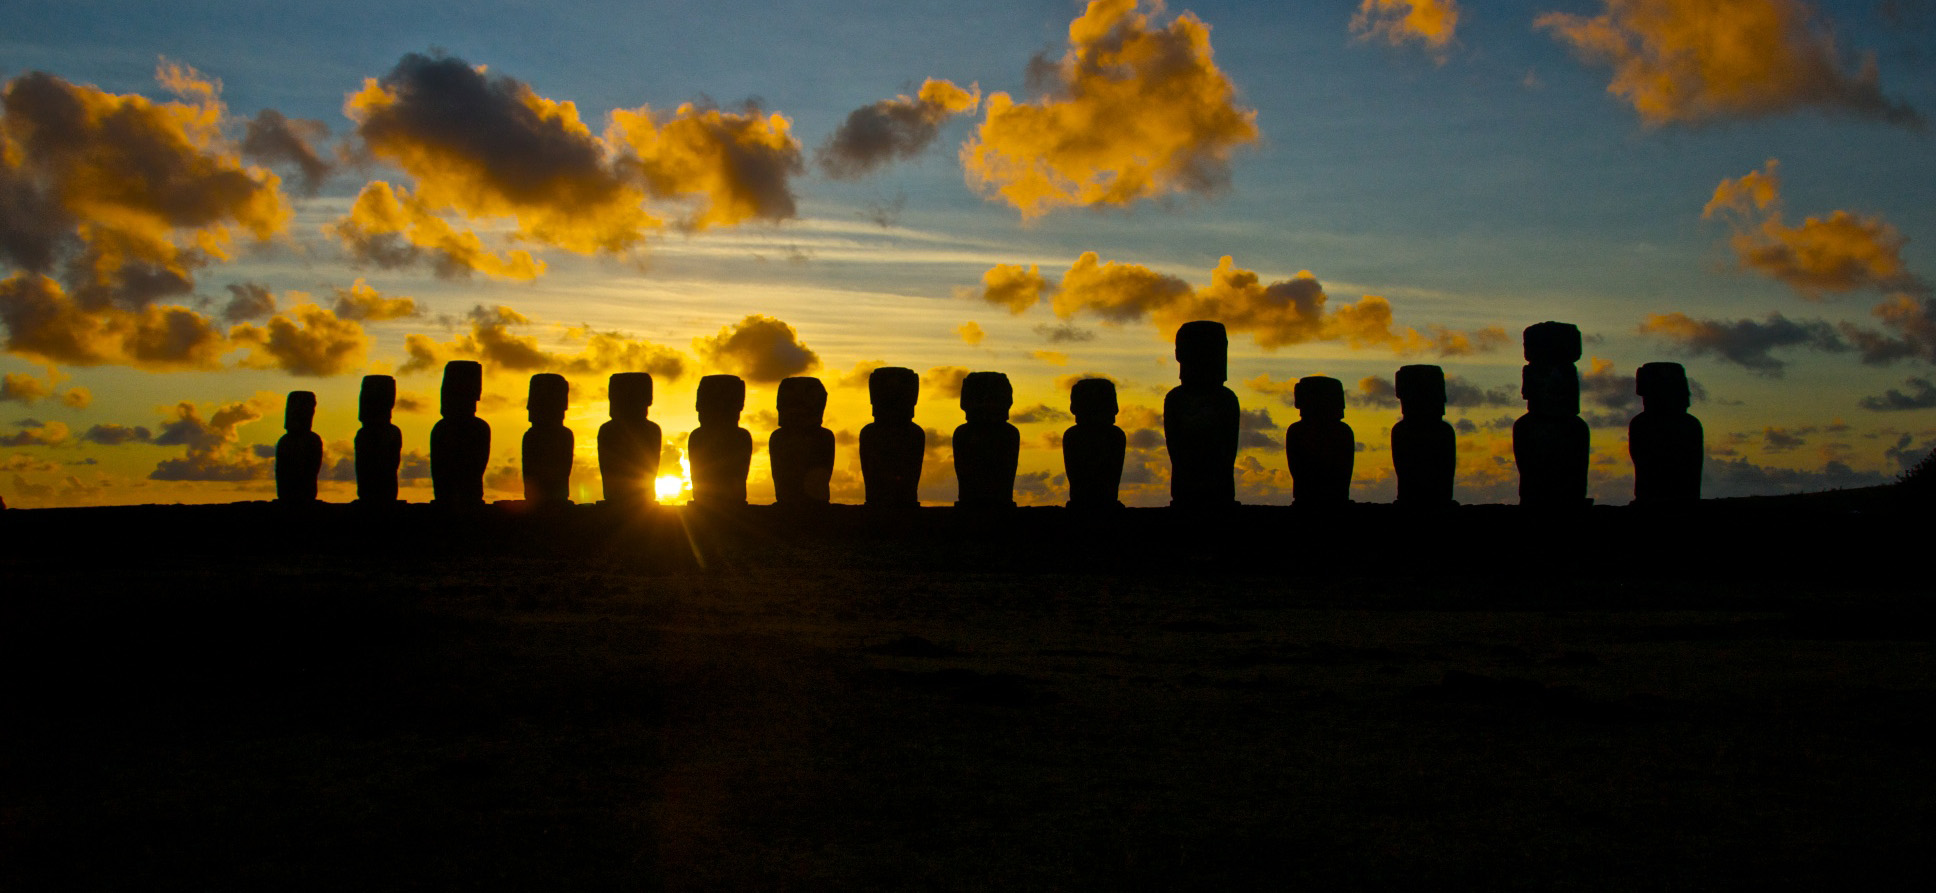 Easter Island, my oldest dream